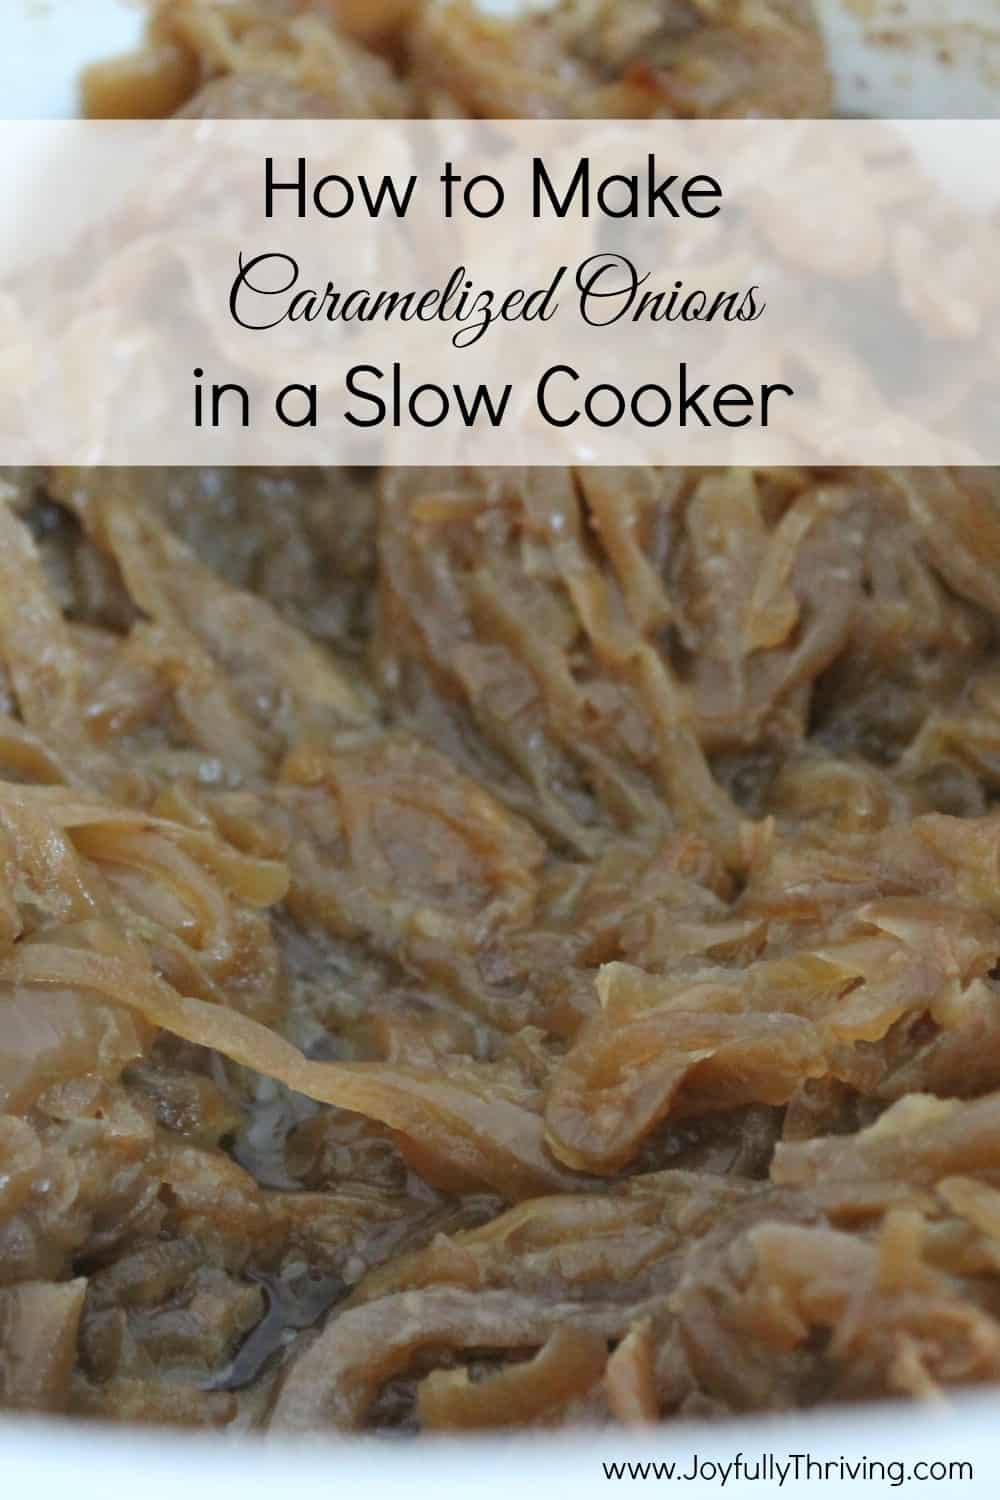 How to Make Caramelized Onions in Your Slow Cooker